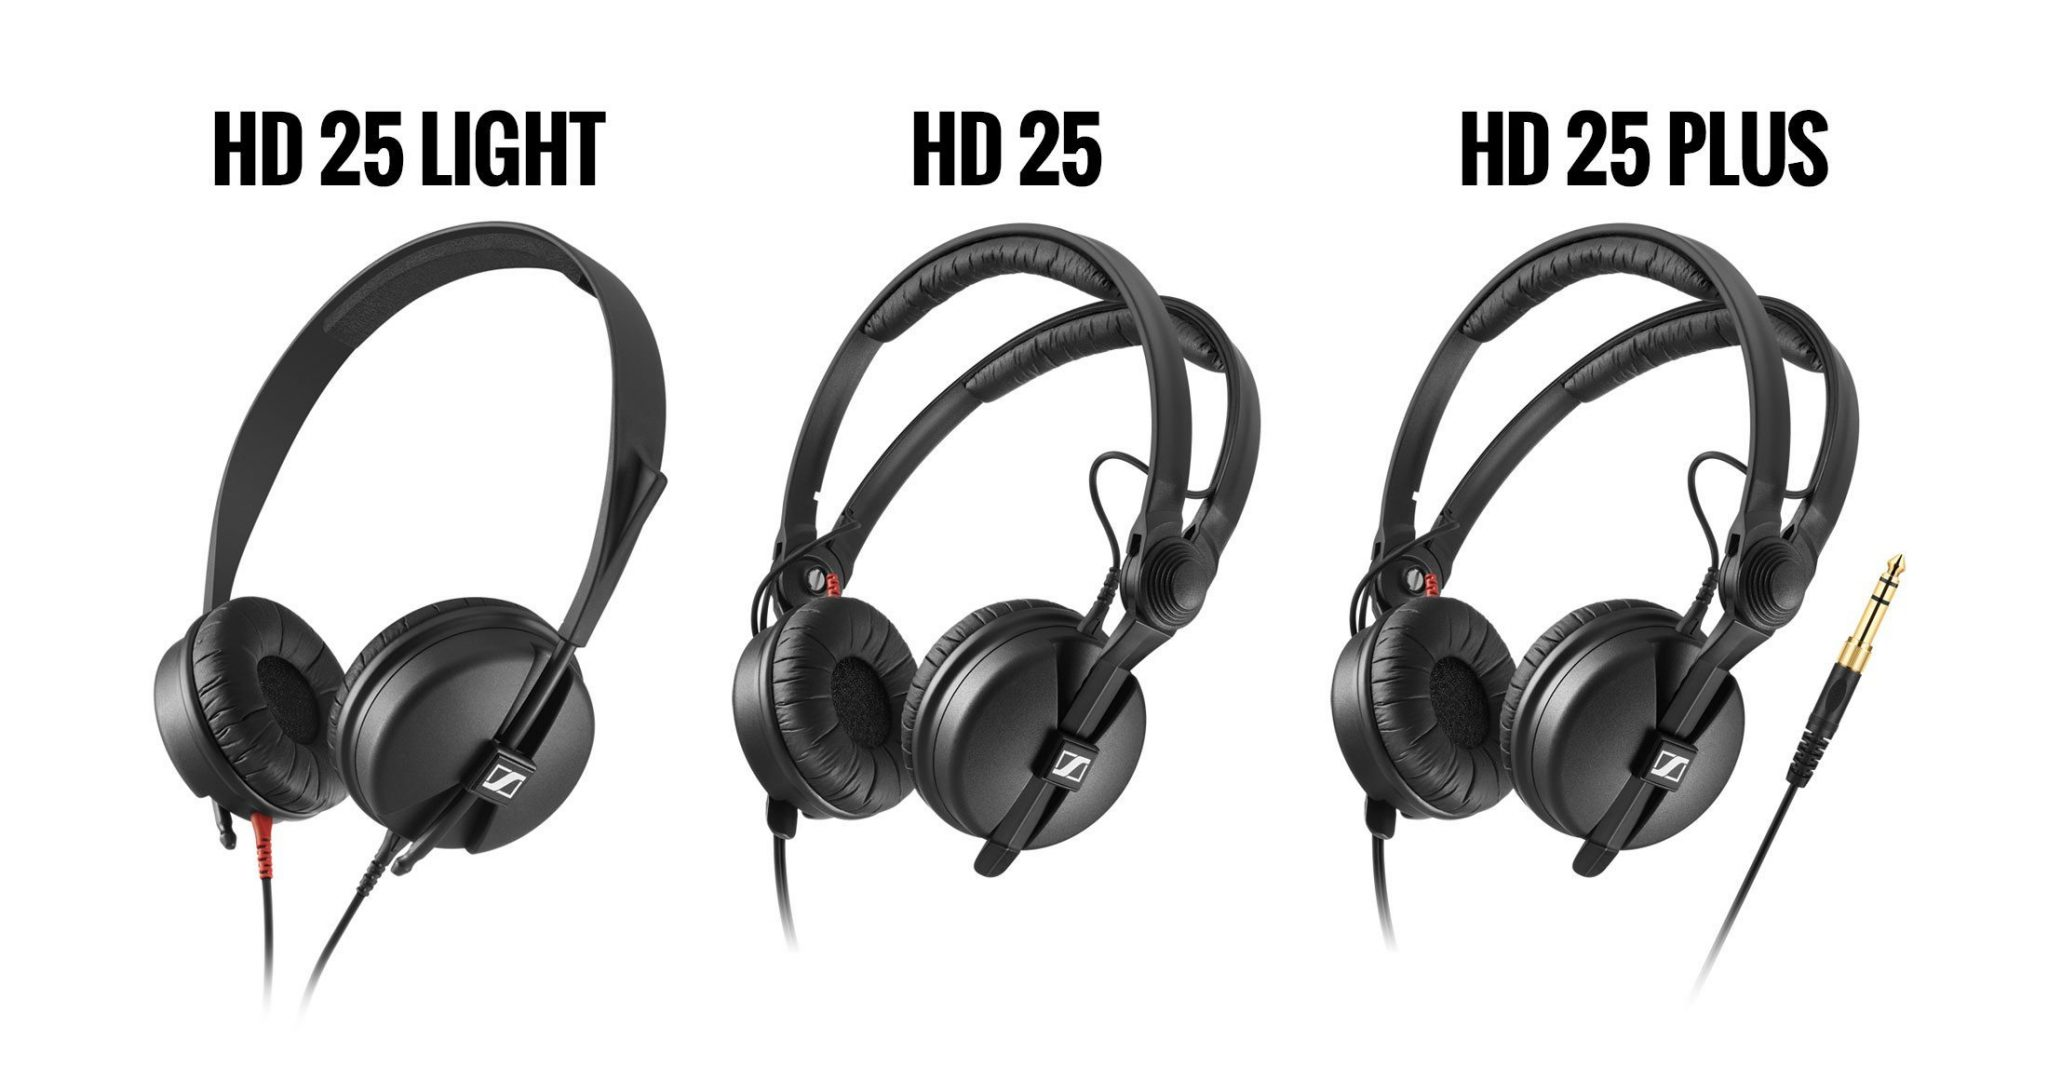 65fb201d856 Ask most DJs what they feel their favourite pair of DJ headphones is, and  you can reasonably guarantee that HD 25 (reviews here and here) will be the  ...